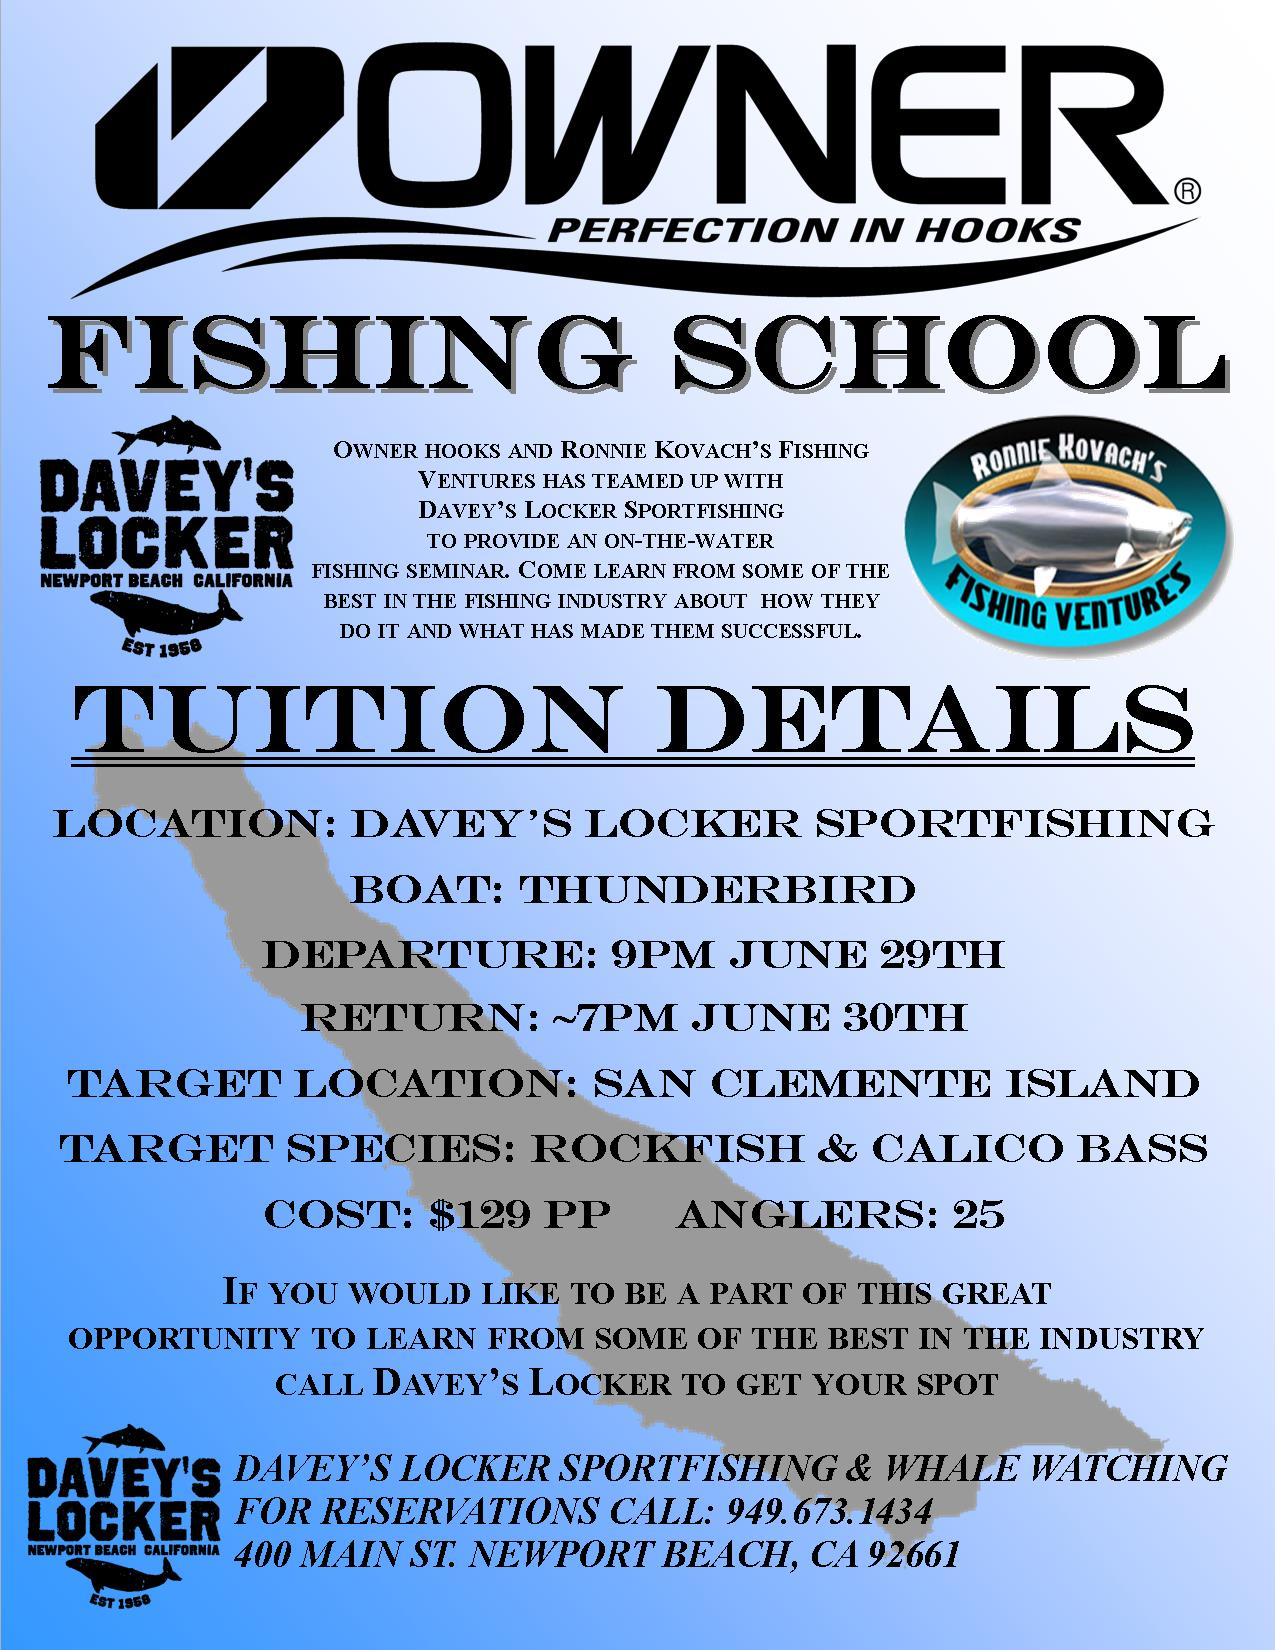 Ronnie Kovach Owner Fishing School